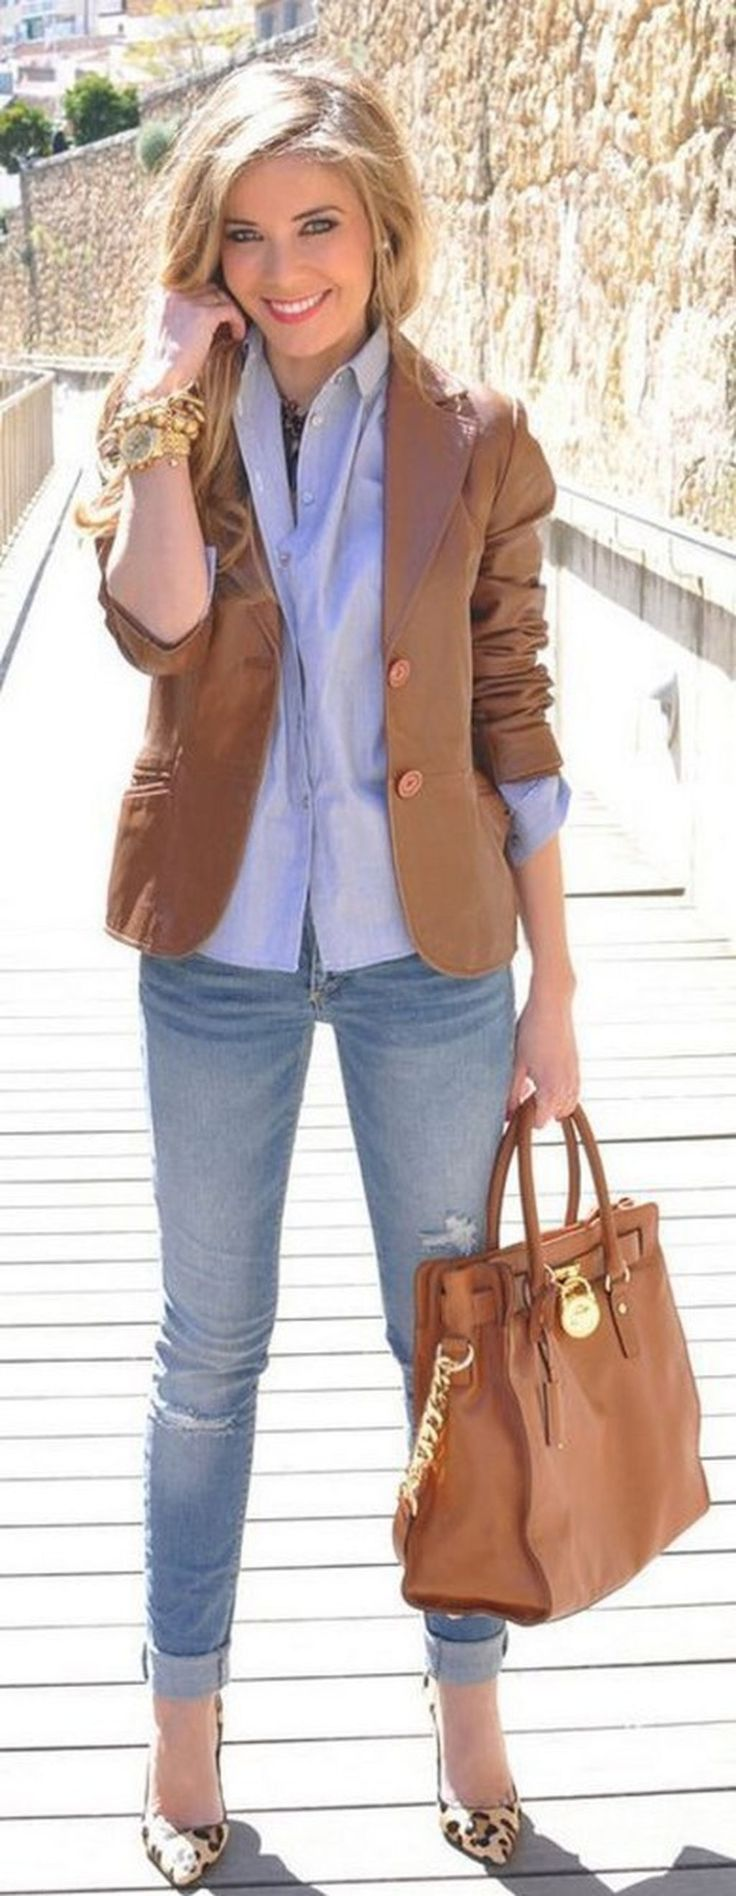 Awesome 57 Cute Blazer Outfits Ideas For Women. More at http://trendwear4you.com/2018/02/05/57-cute-blazer-outfits-ideas-women/